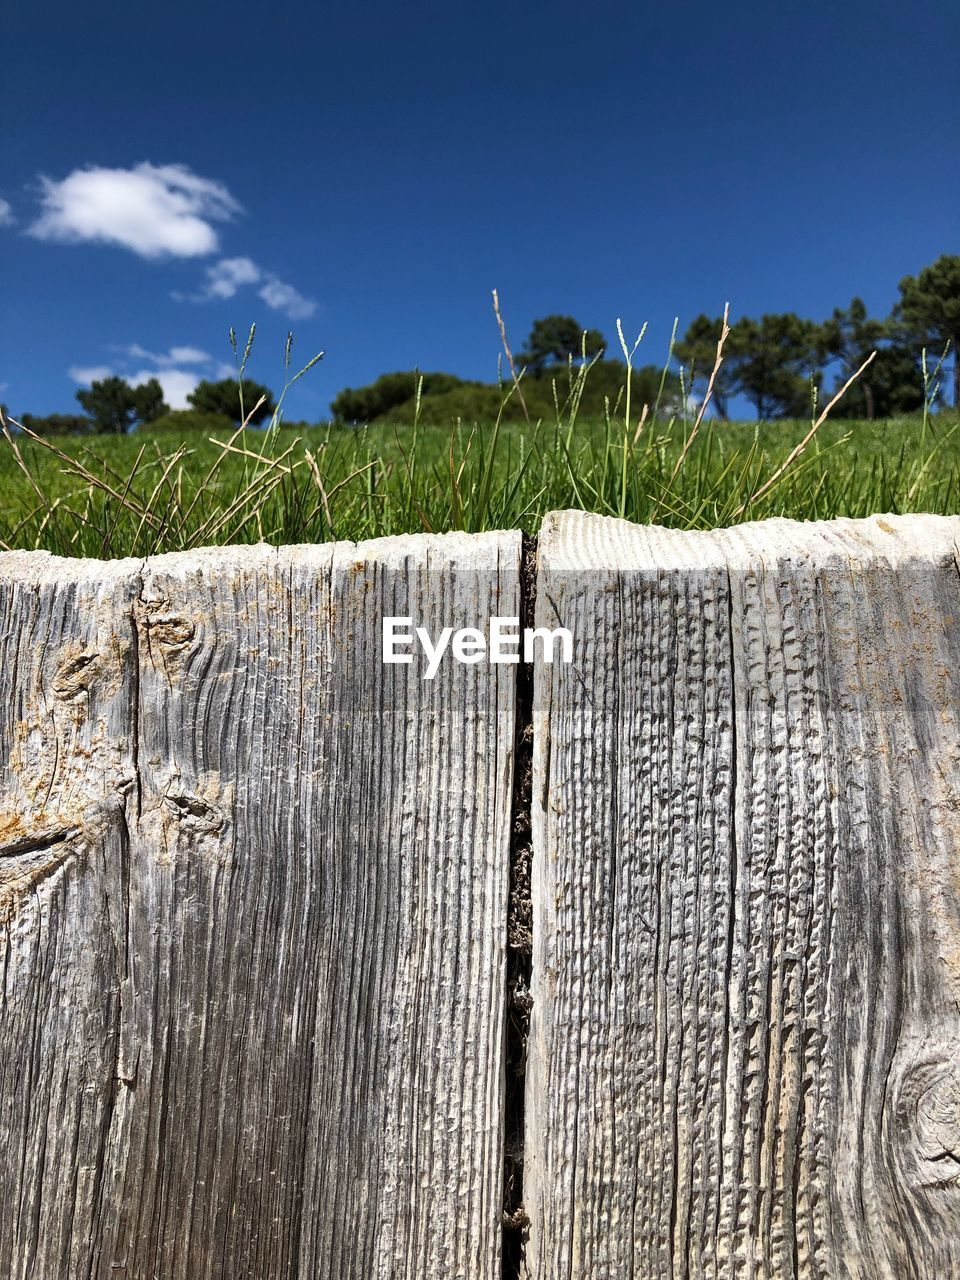 sky, wood - material, plant, nature, landscape, day, boundary, land, field, no people, barrier, fence, blue, rural scene, sunlight, outdoors, environment, growth, grass, tree, wooden post